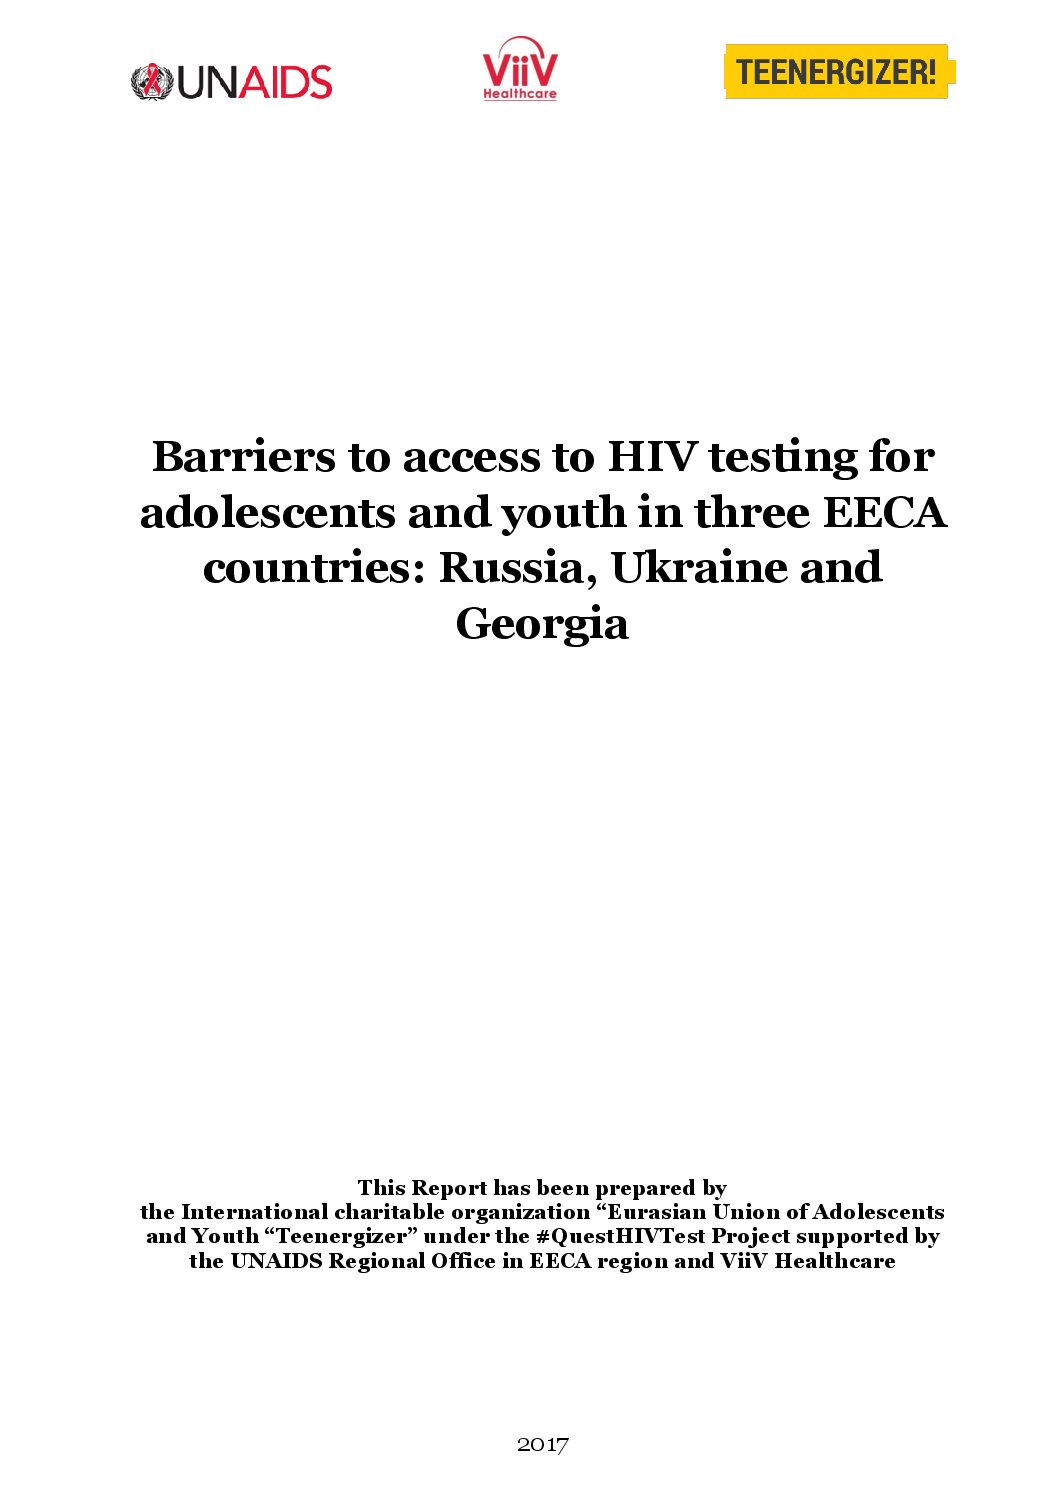 Barriers to access to HIV testing for adolescents and youth in three EECA countries: Russia, Ukraine and Georgia